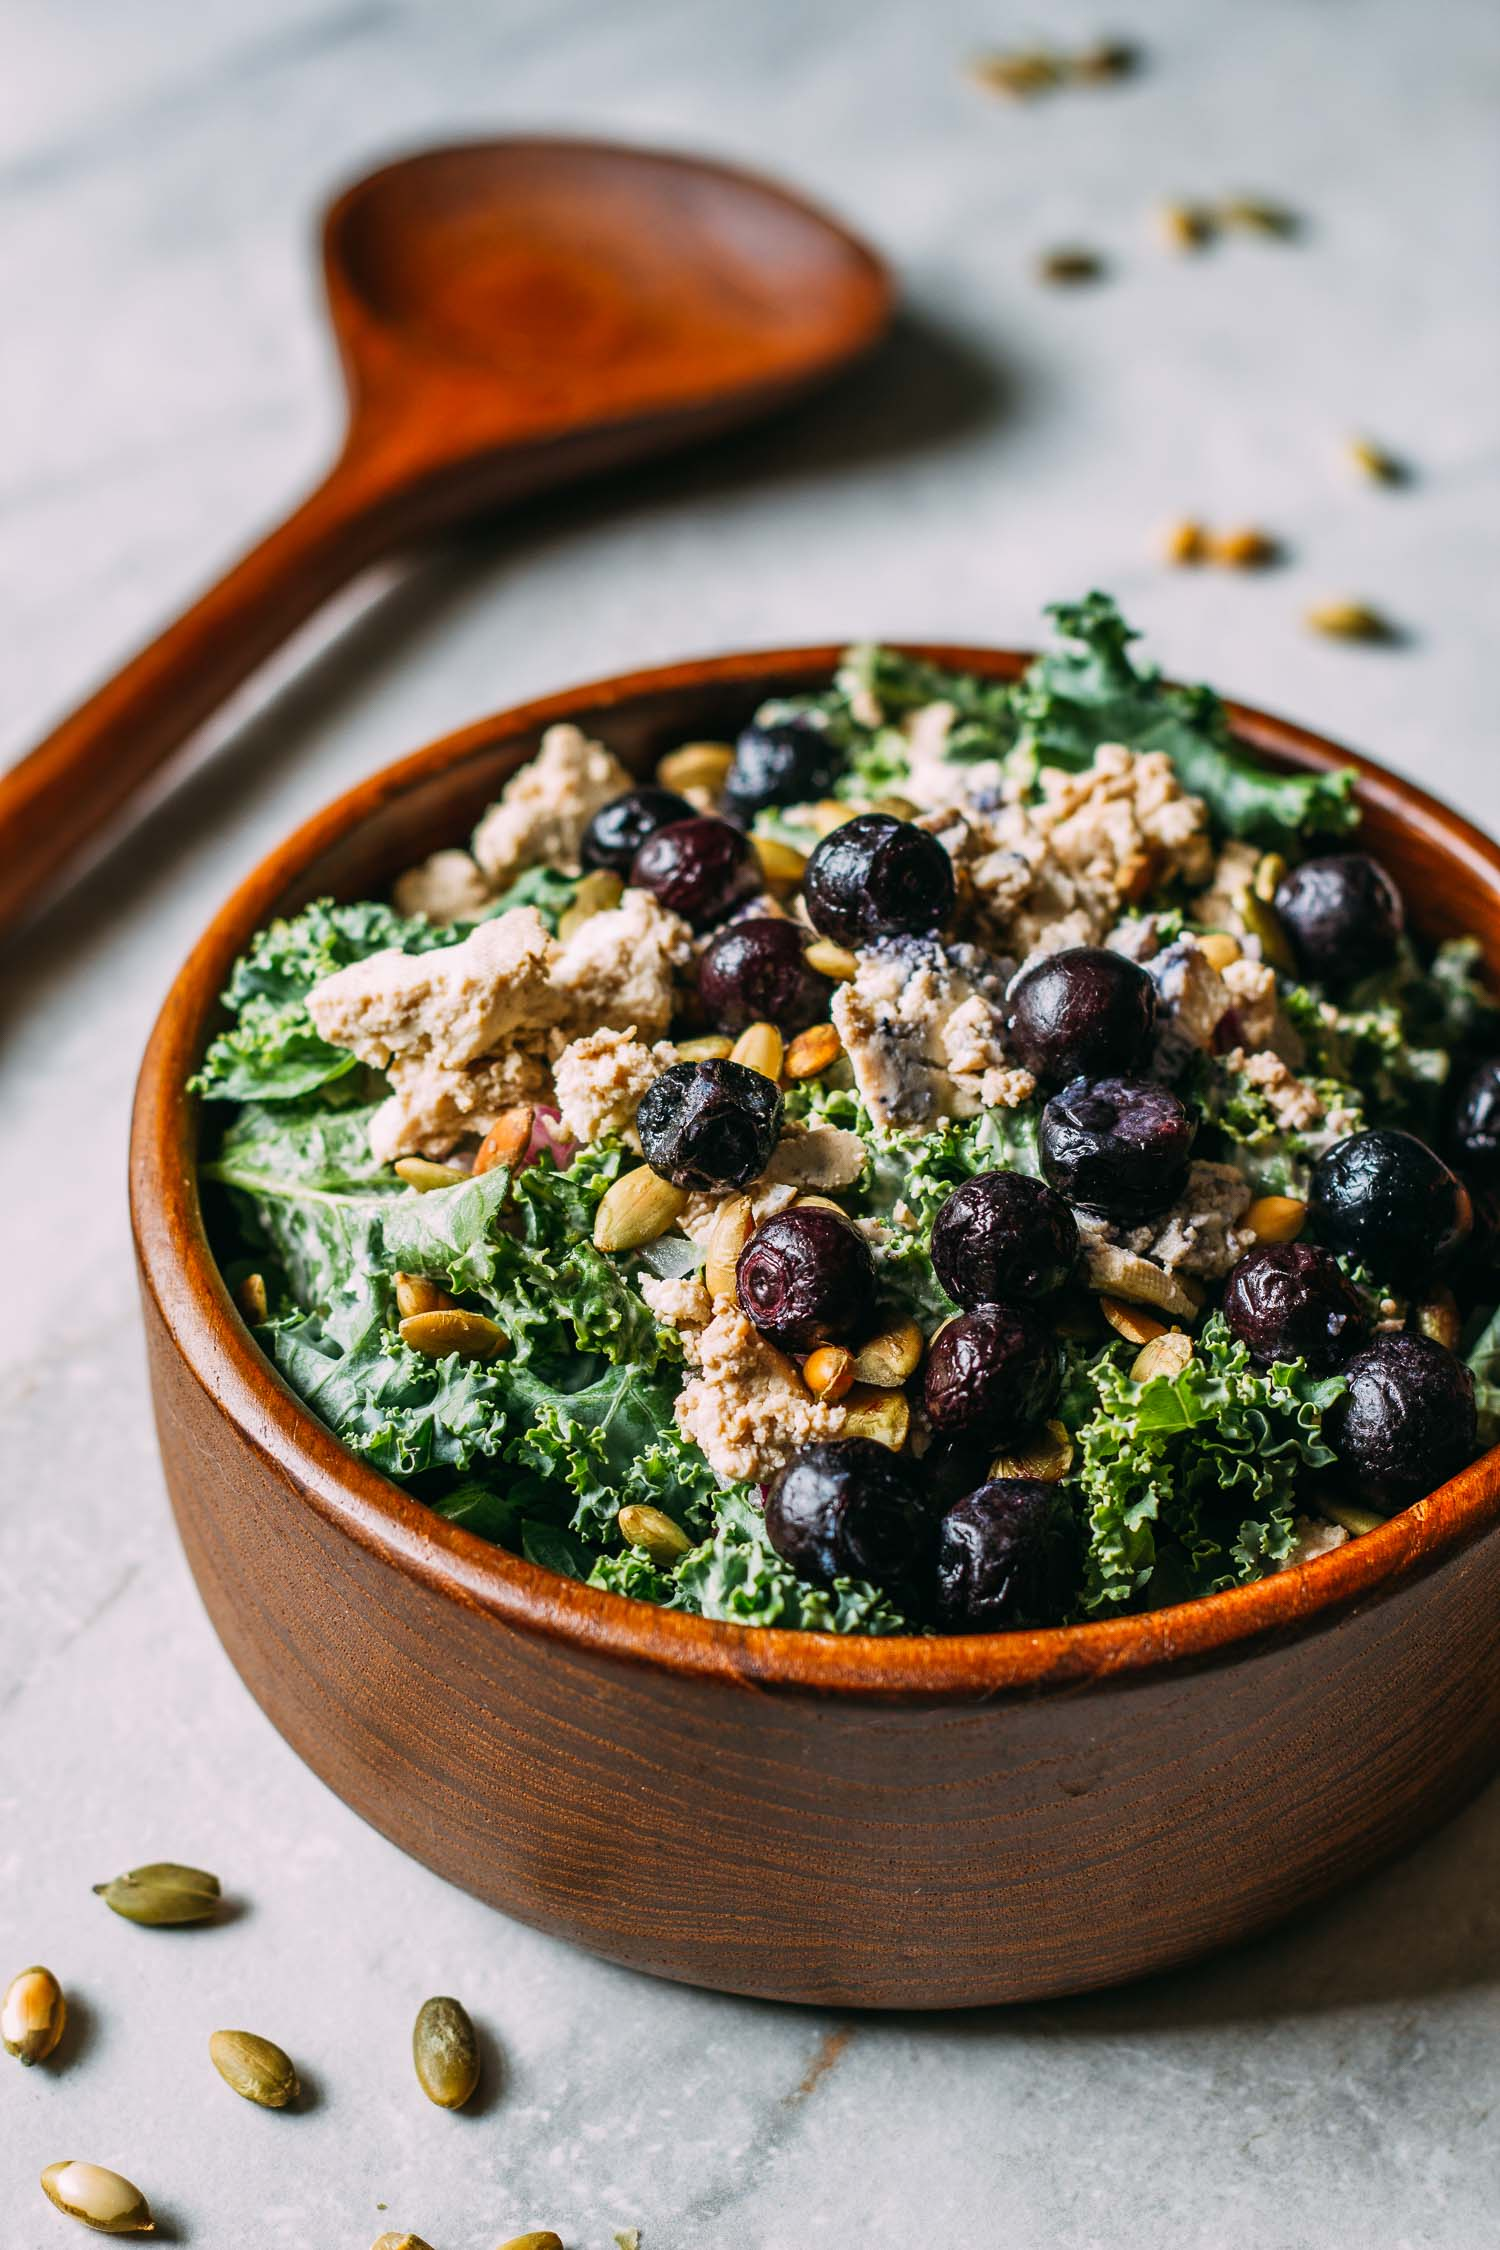 Blueberry Kale Pumpkin Seed Salad #vegetarian #vegan #oil-free #wfpb #wfpbno #recipe #kale #salad #cookout #easy #entertaining #holiday #buffet